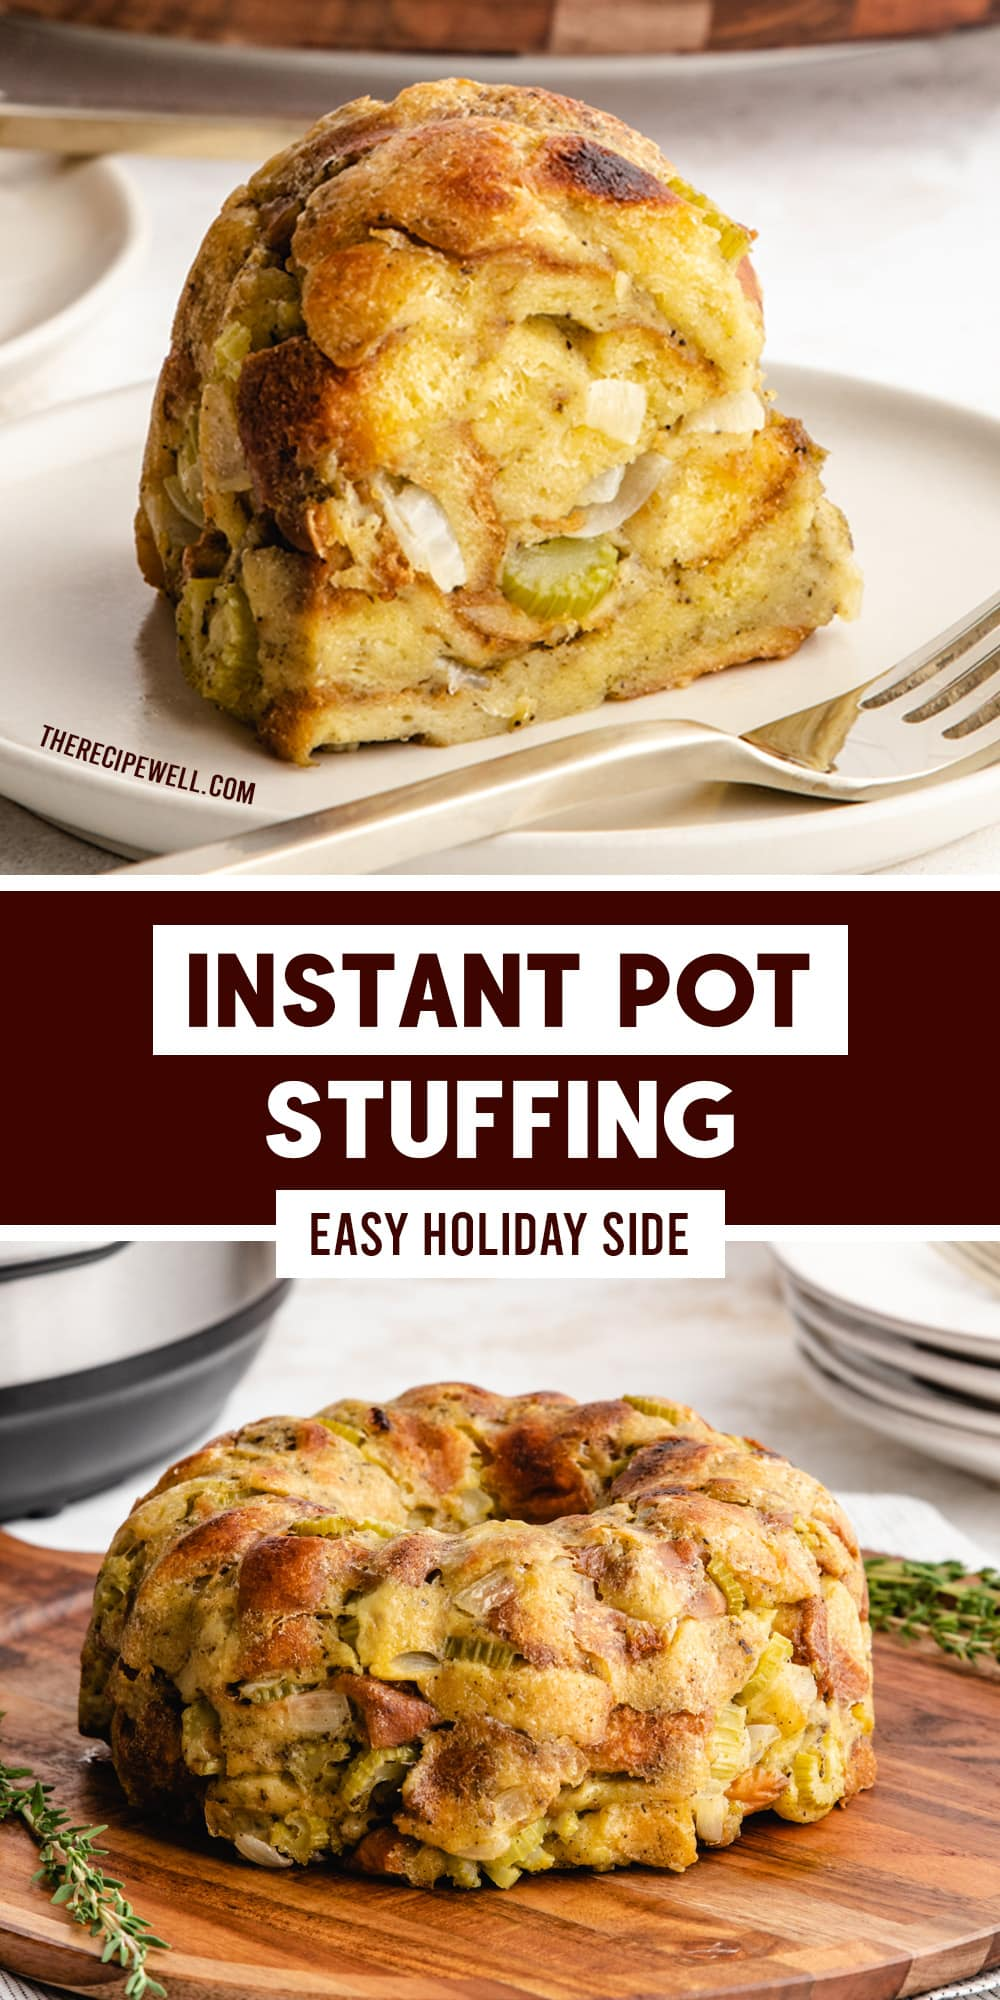 Are you making your holiday dressing outside the turkey? Look no further than this Instant Pot Stuffing. Made with simple ingredients, this stuffing casserole is easy to make and has classic, savoury holiday flavour. via @therecipewell